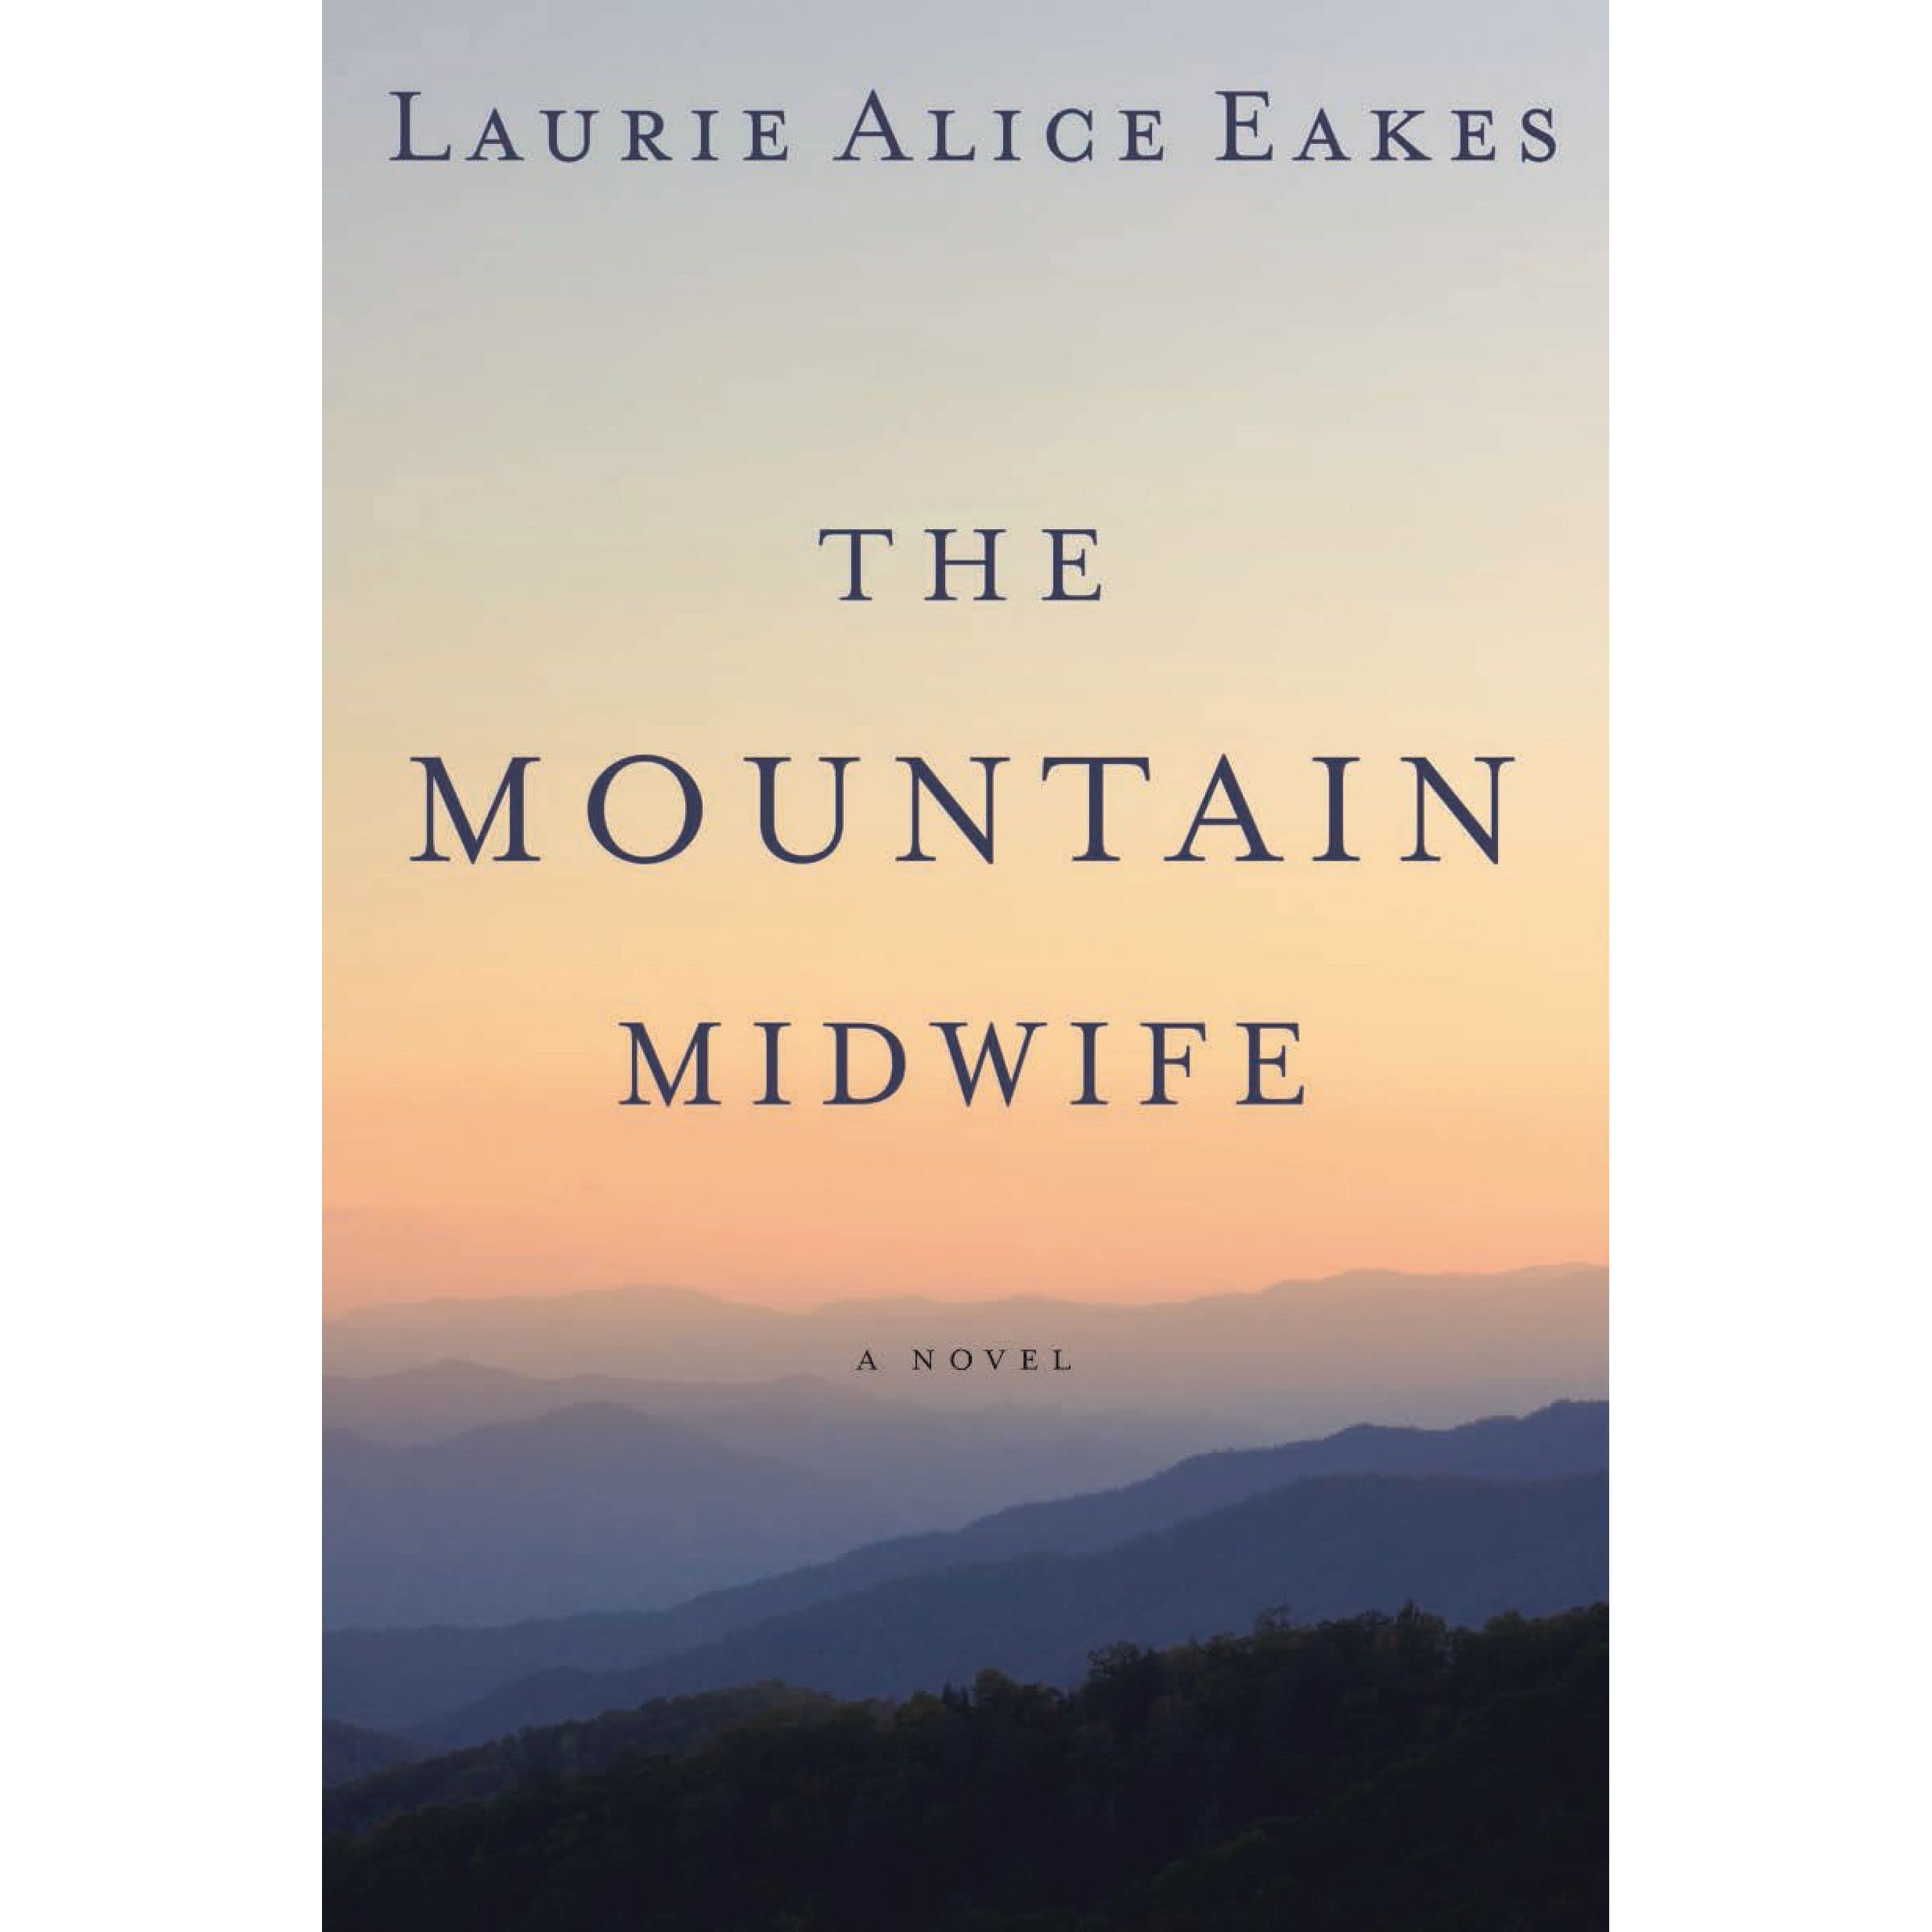 Midwife and other poems on caring array the mountain midwife by laurie alice eakes rh goodreads fandeluxe Gallery